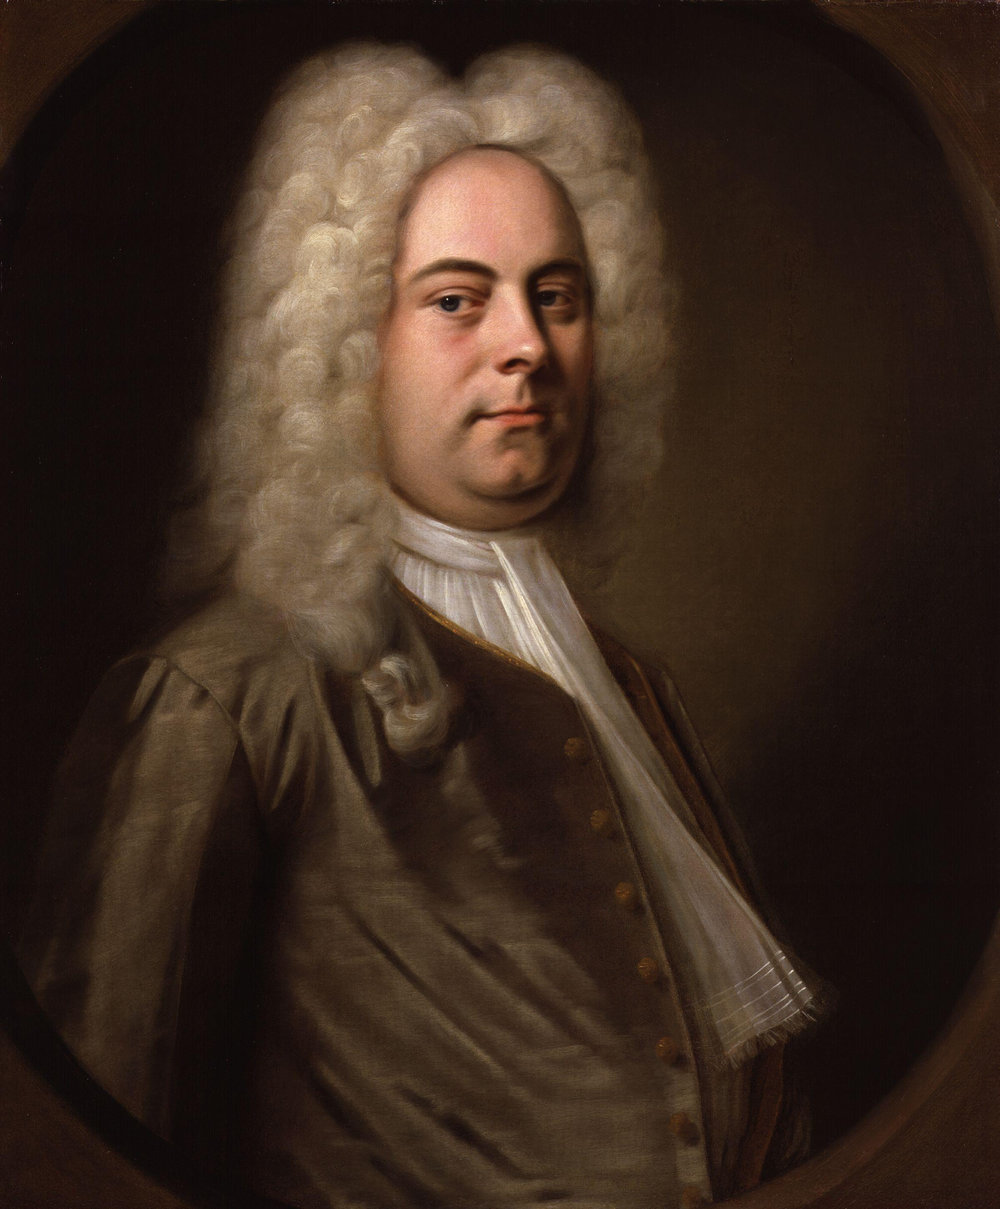 George_Frideric_Handel_by_Balthasar_Denner.jpg